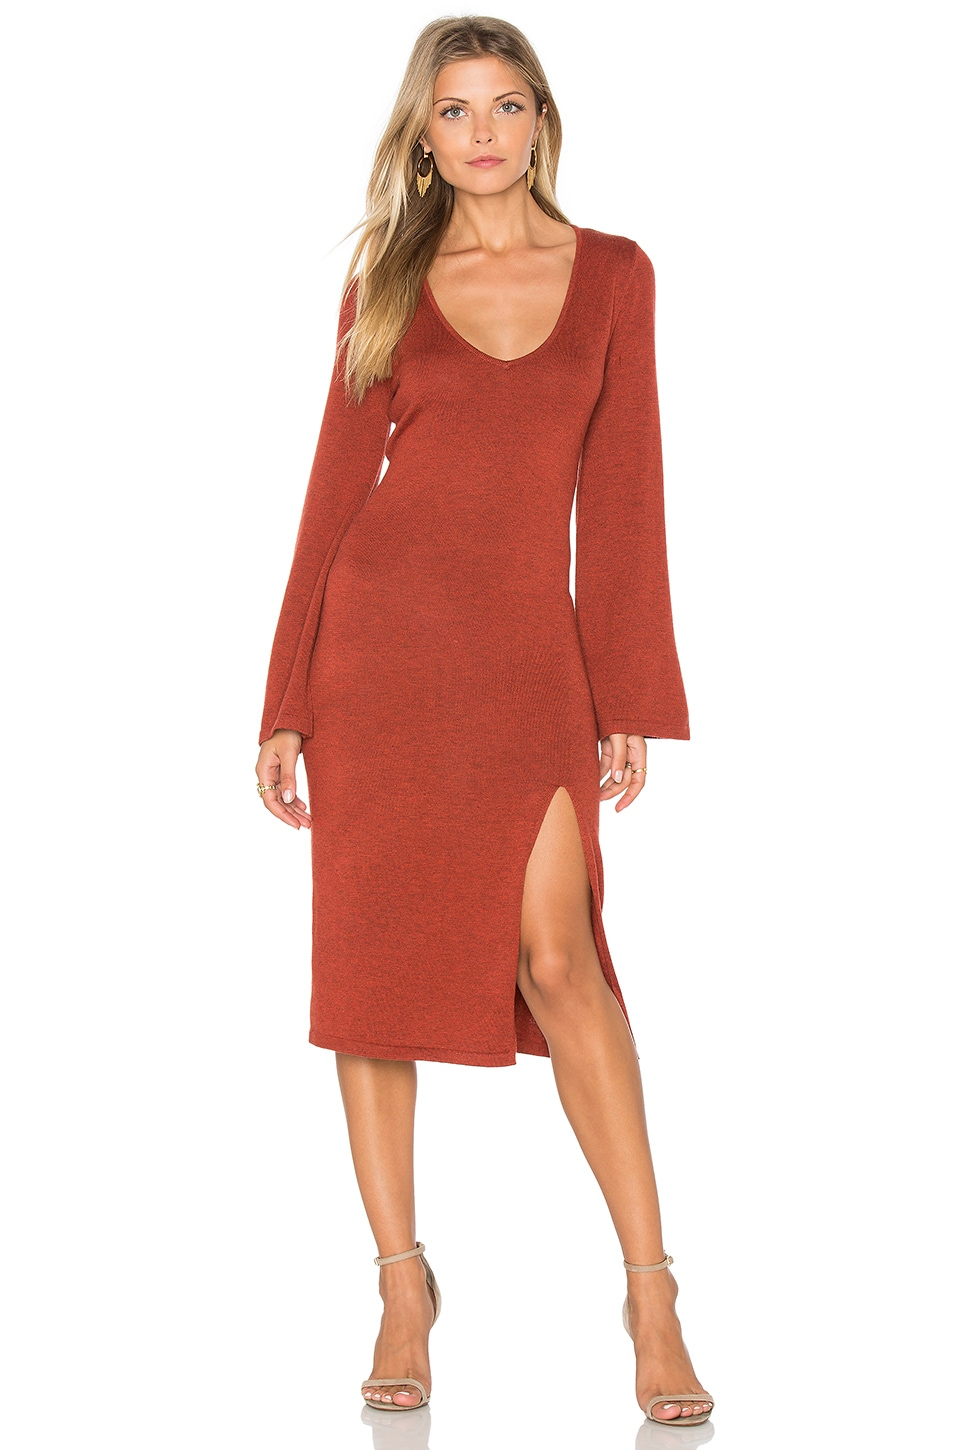 MINKPINK Start Over Dress in Brick